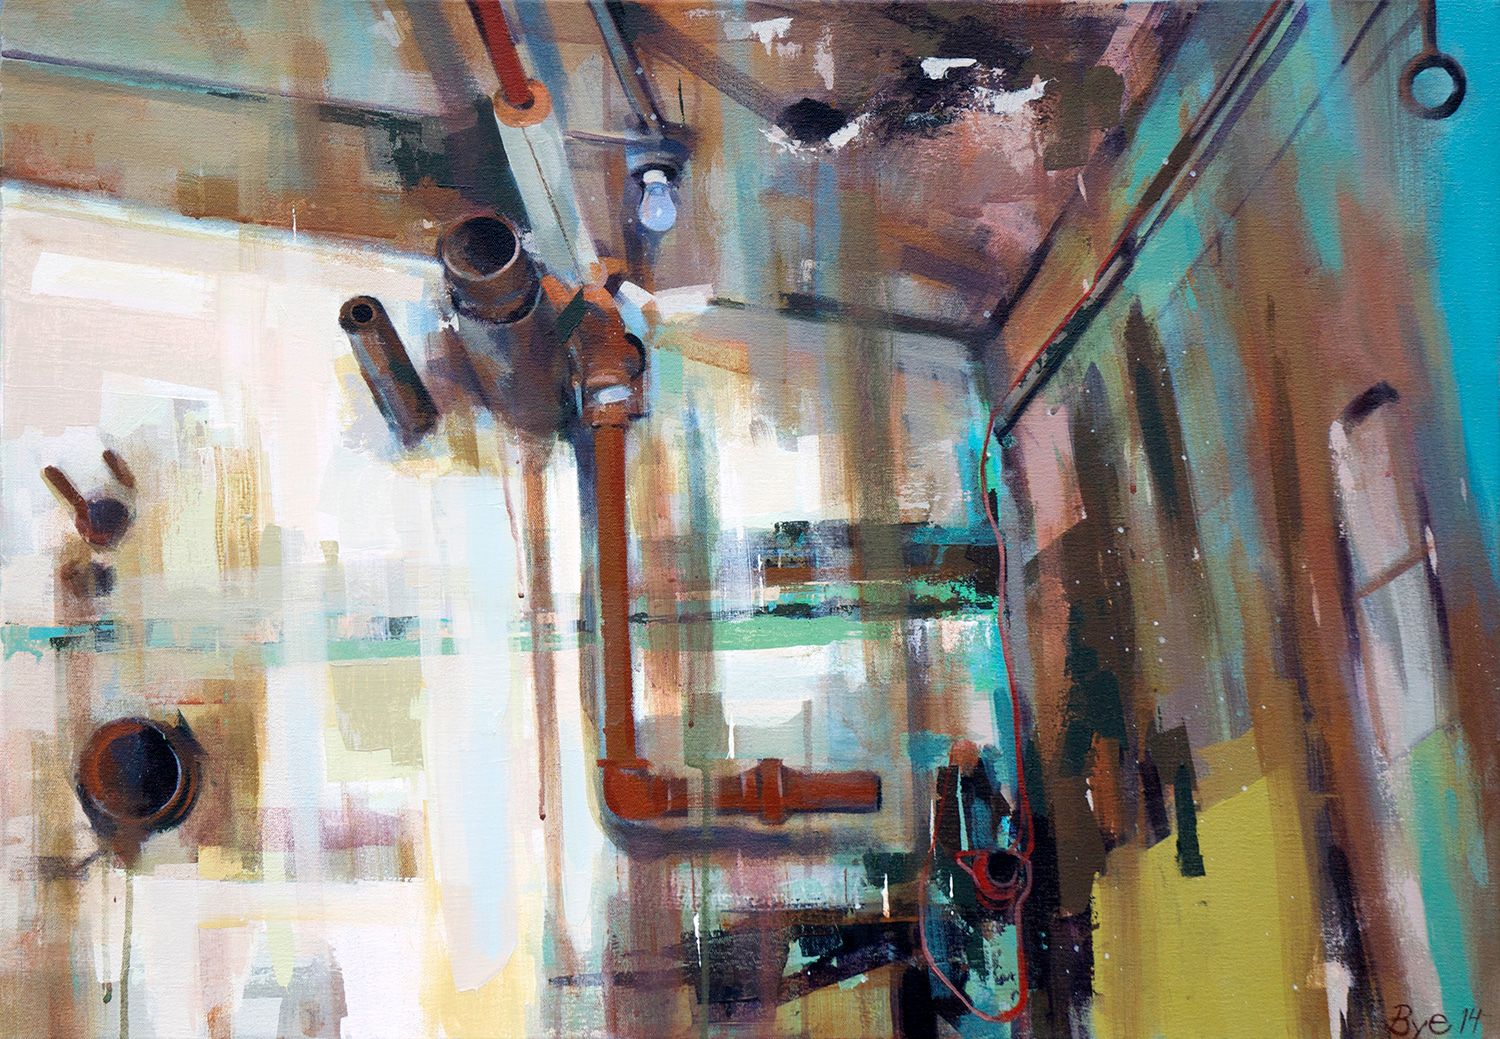 "Inside Domino Sugar Factory, Acrylic on Canvas (30"" x 42"")"